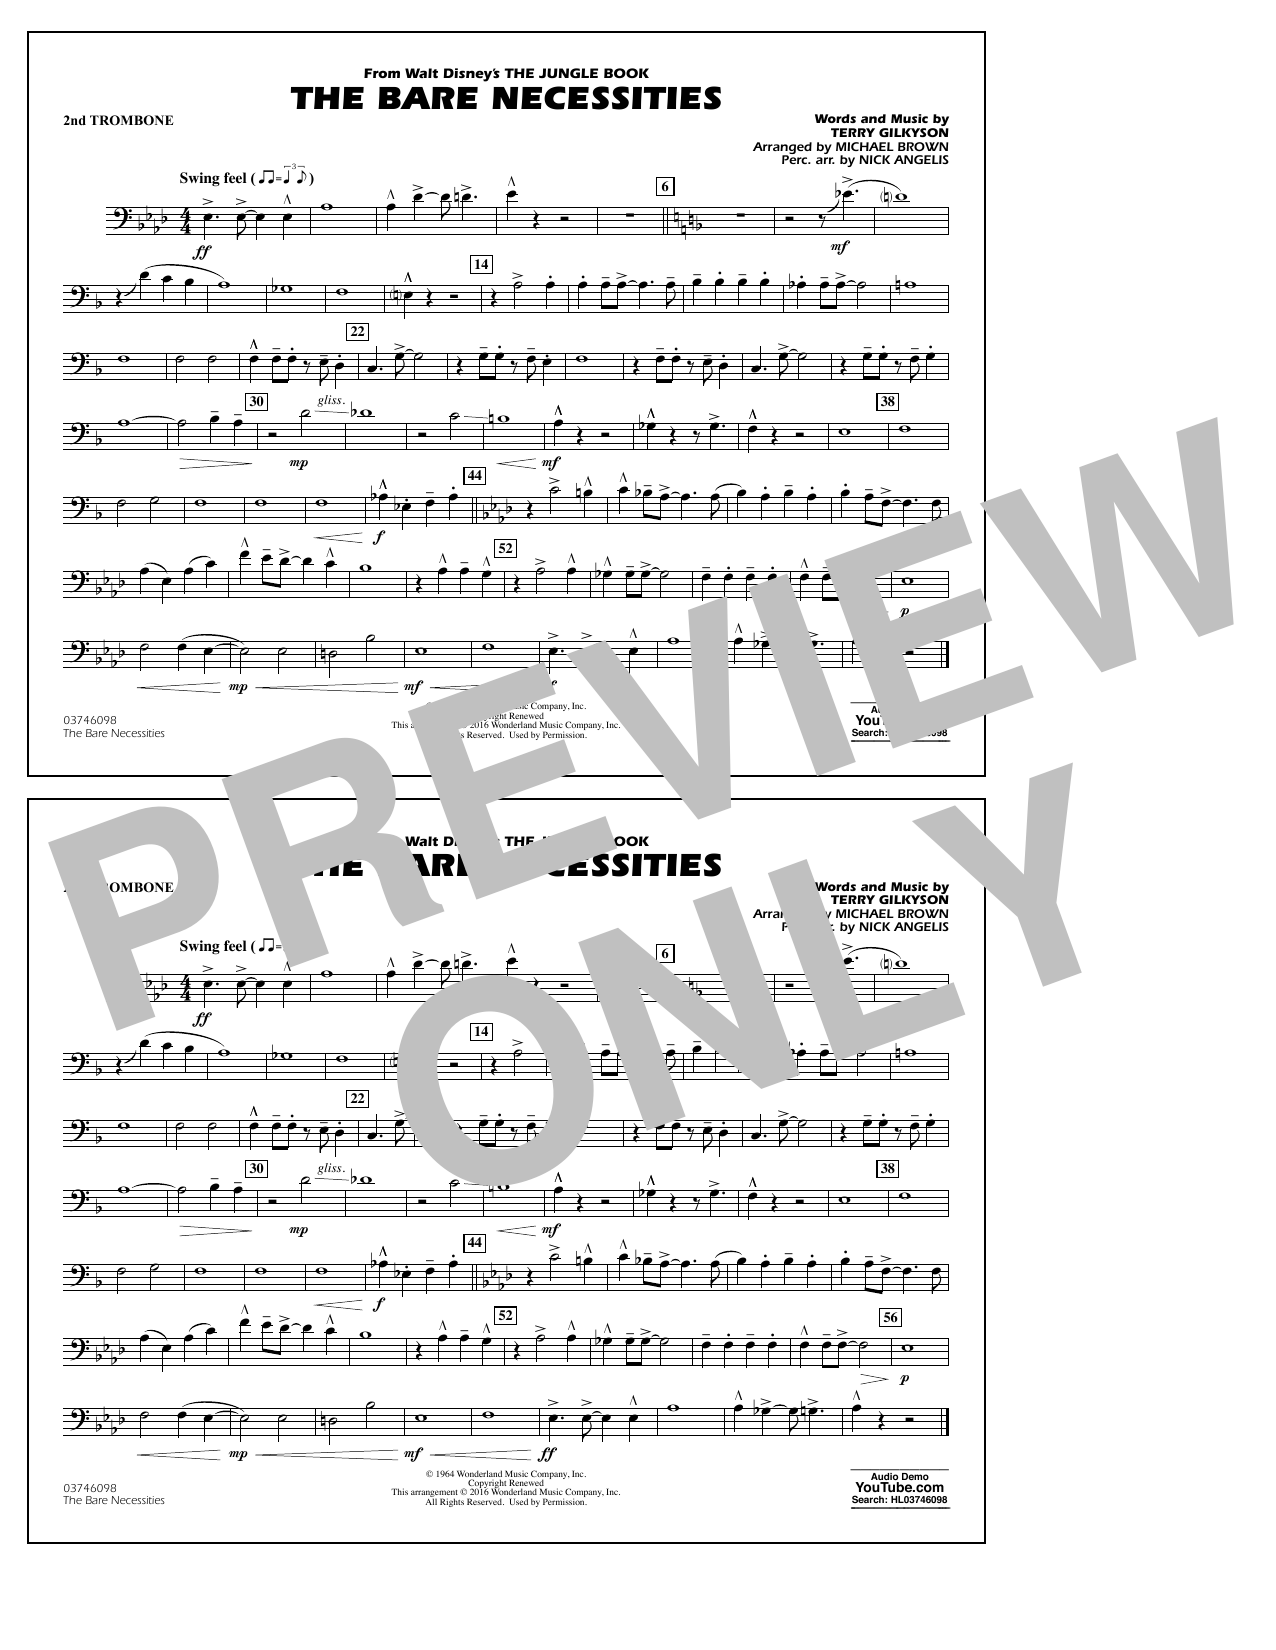 The Bare Necessities (from The Jungle Book) - 2nd Trombone Partituras Digitales